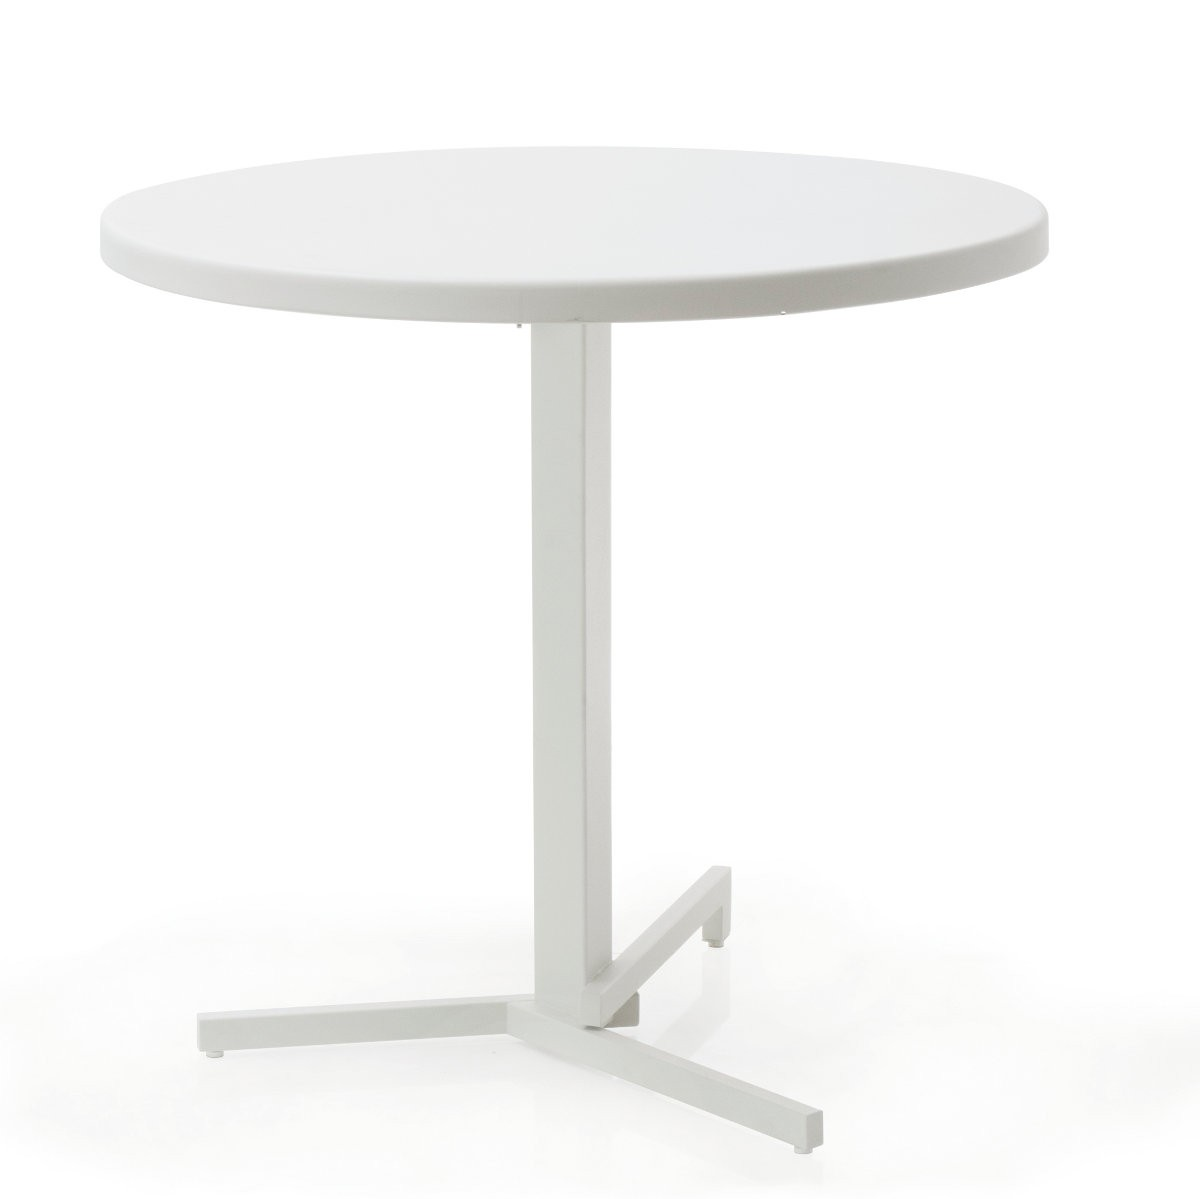 Table ronde mia de emu blanc for Table ronde blanc